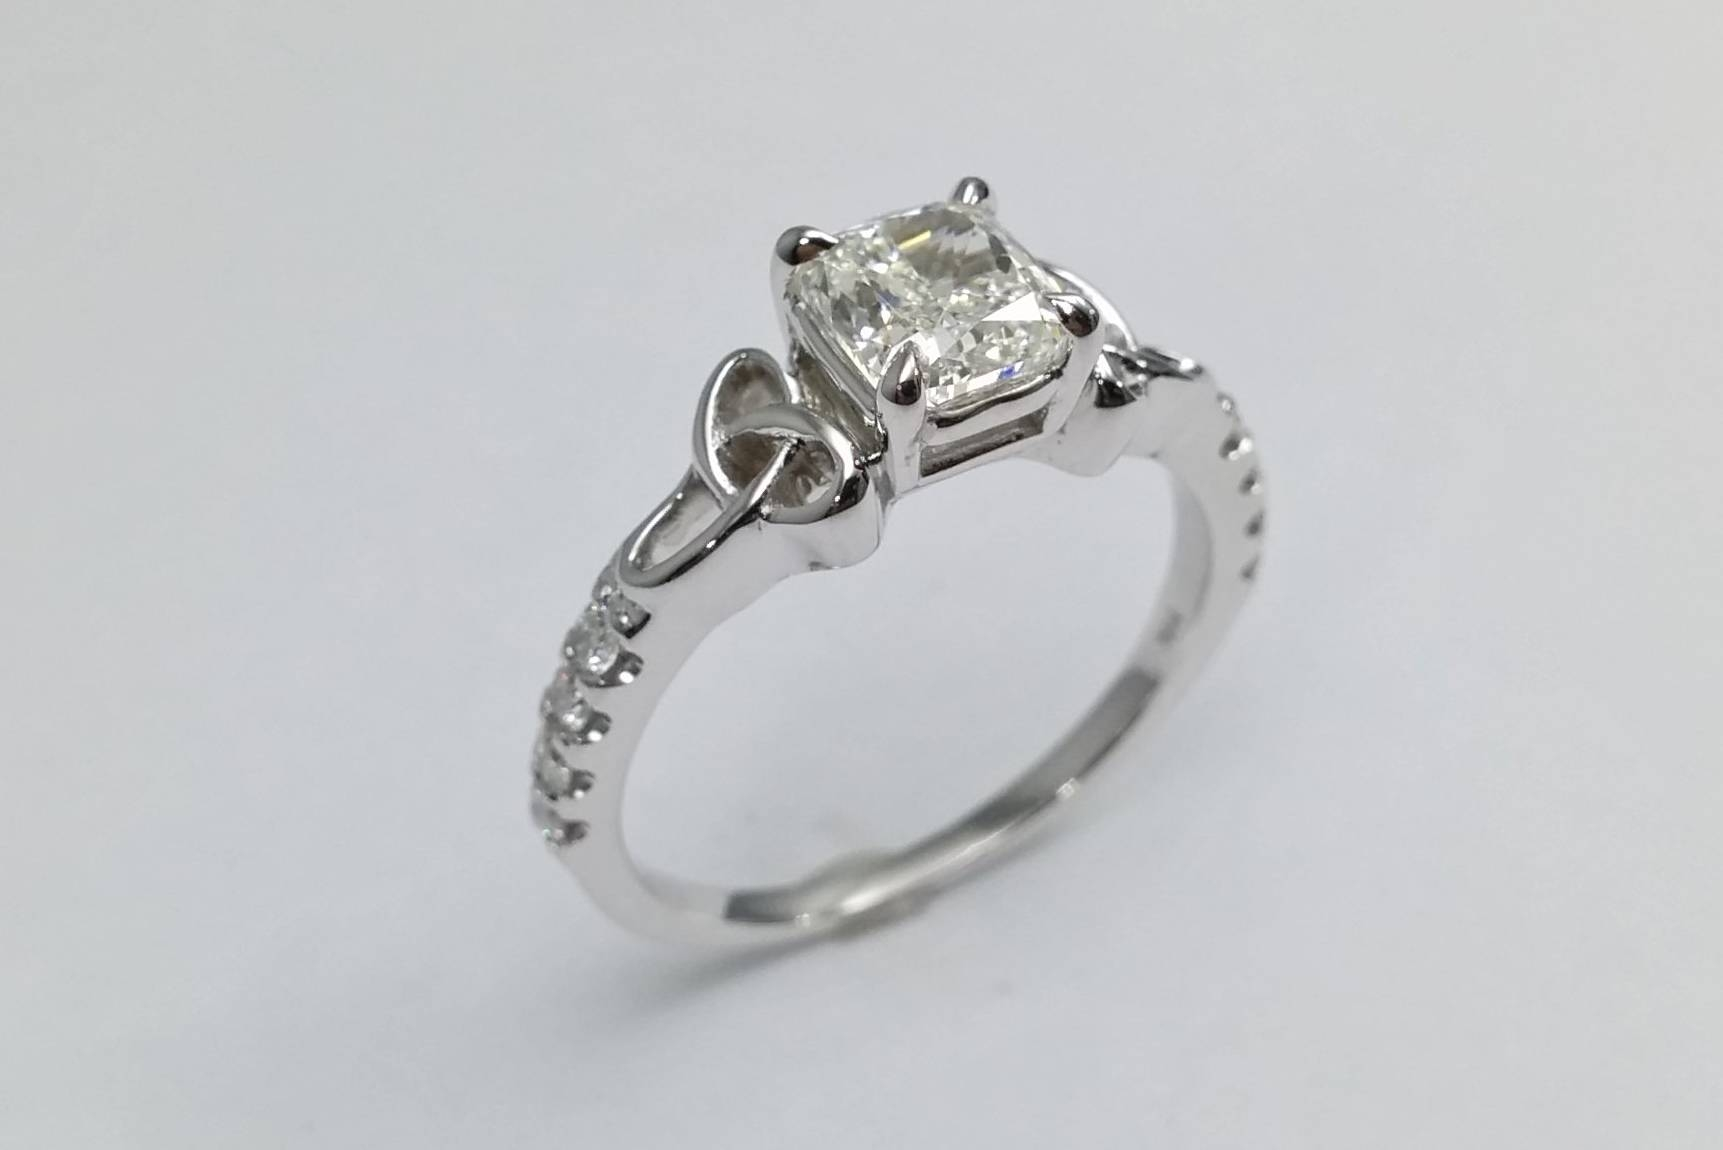 Celtic – Engagement Rings From Mdc Diamonds Nyc Pertaining To Gaelic Engagement Rings (View 3 of 15)